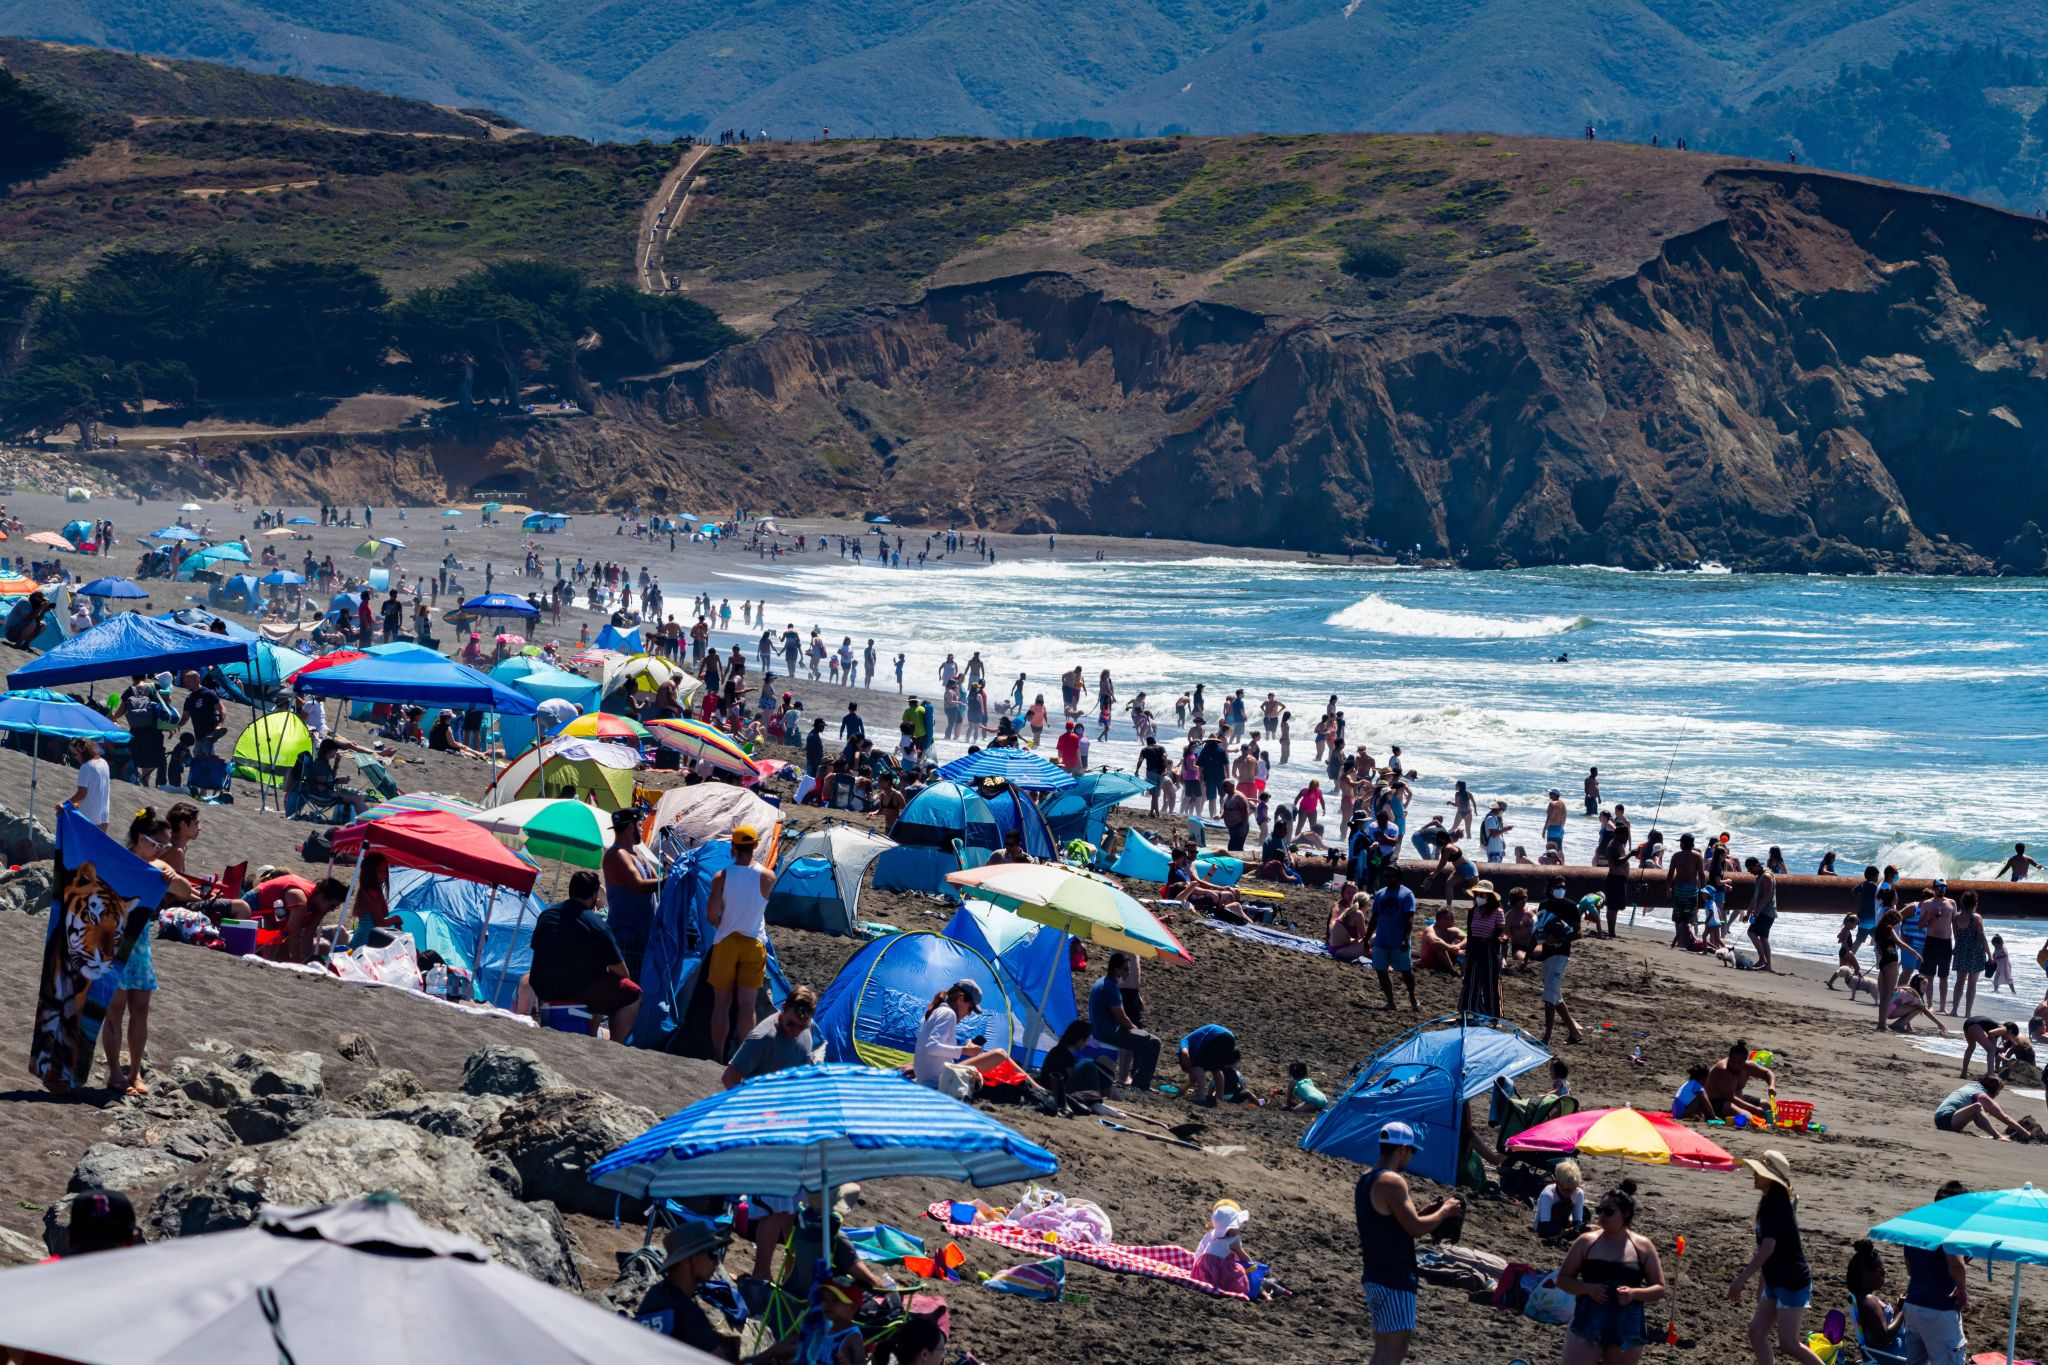 How Safe Is A Crowded Beach During A Pandemic Photo Sparks Controversy In Pacifica A painted bunting photographed sunday by jacques pitteloud, switzerland's ambassador to the u.s., at the chesapeake & ohio canal national historical park in maryland. crowded beach during a pandemic